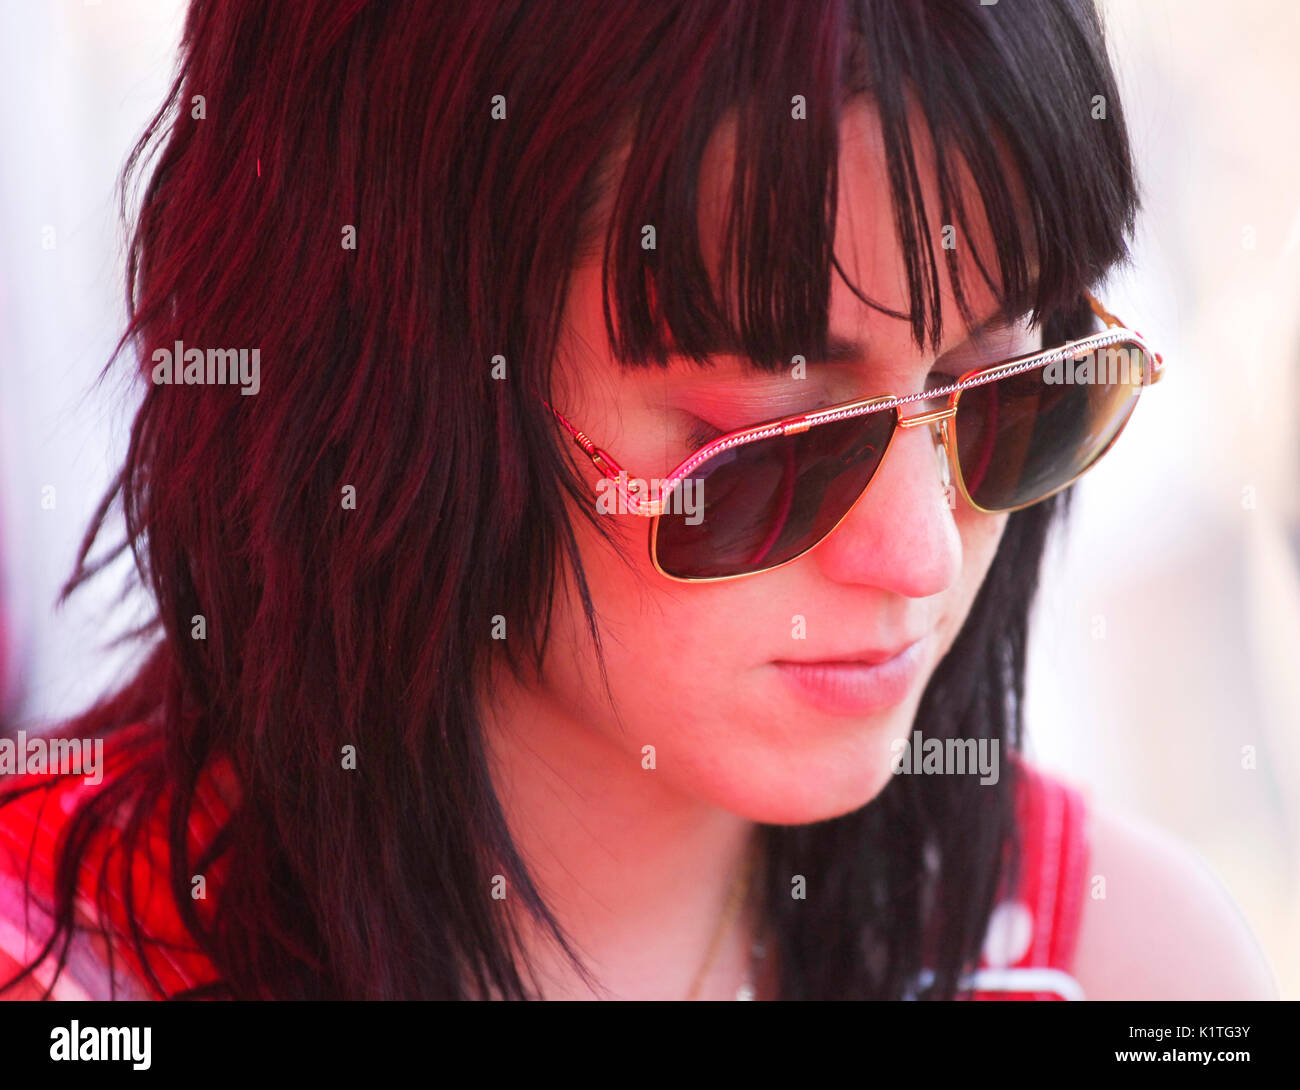 Katy Perry 2008 Vans Warped Tour Pomona Fairgrounds Pomona. - Stock Image